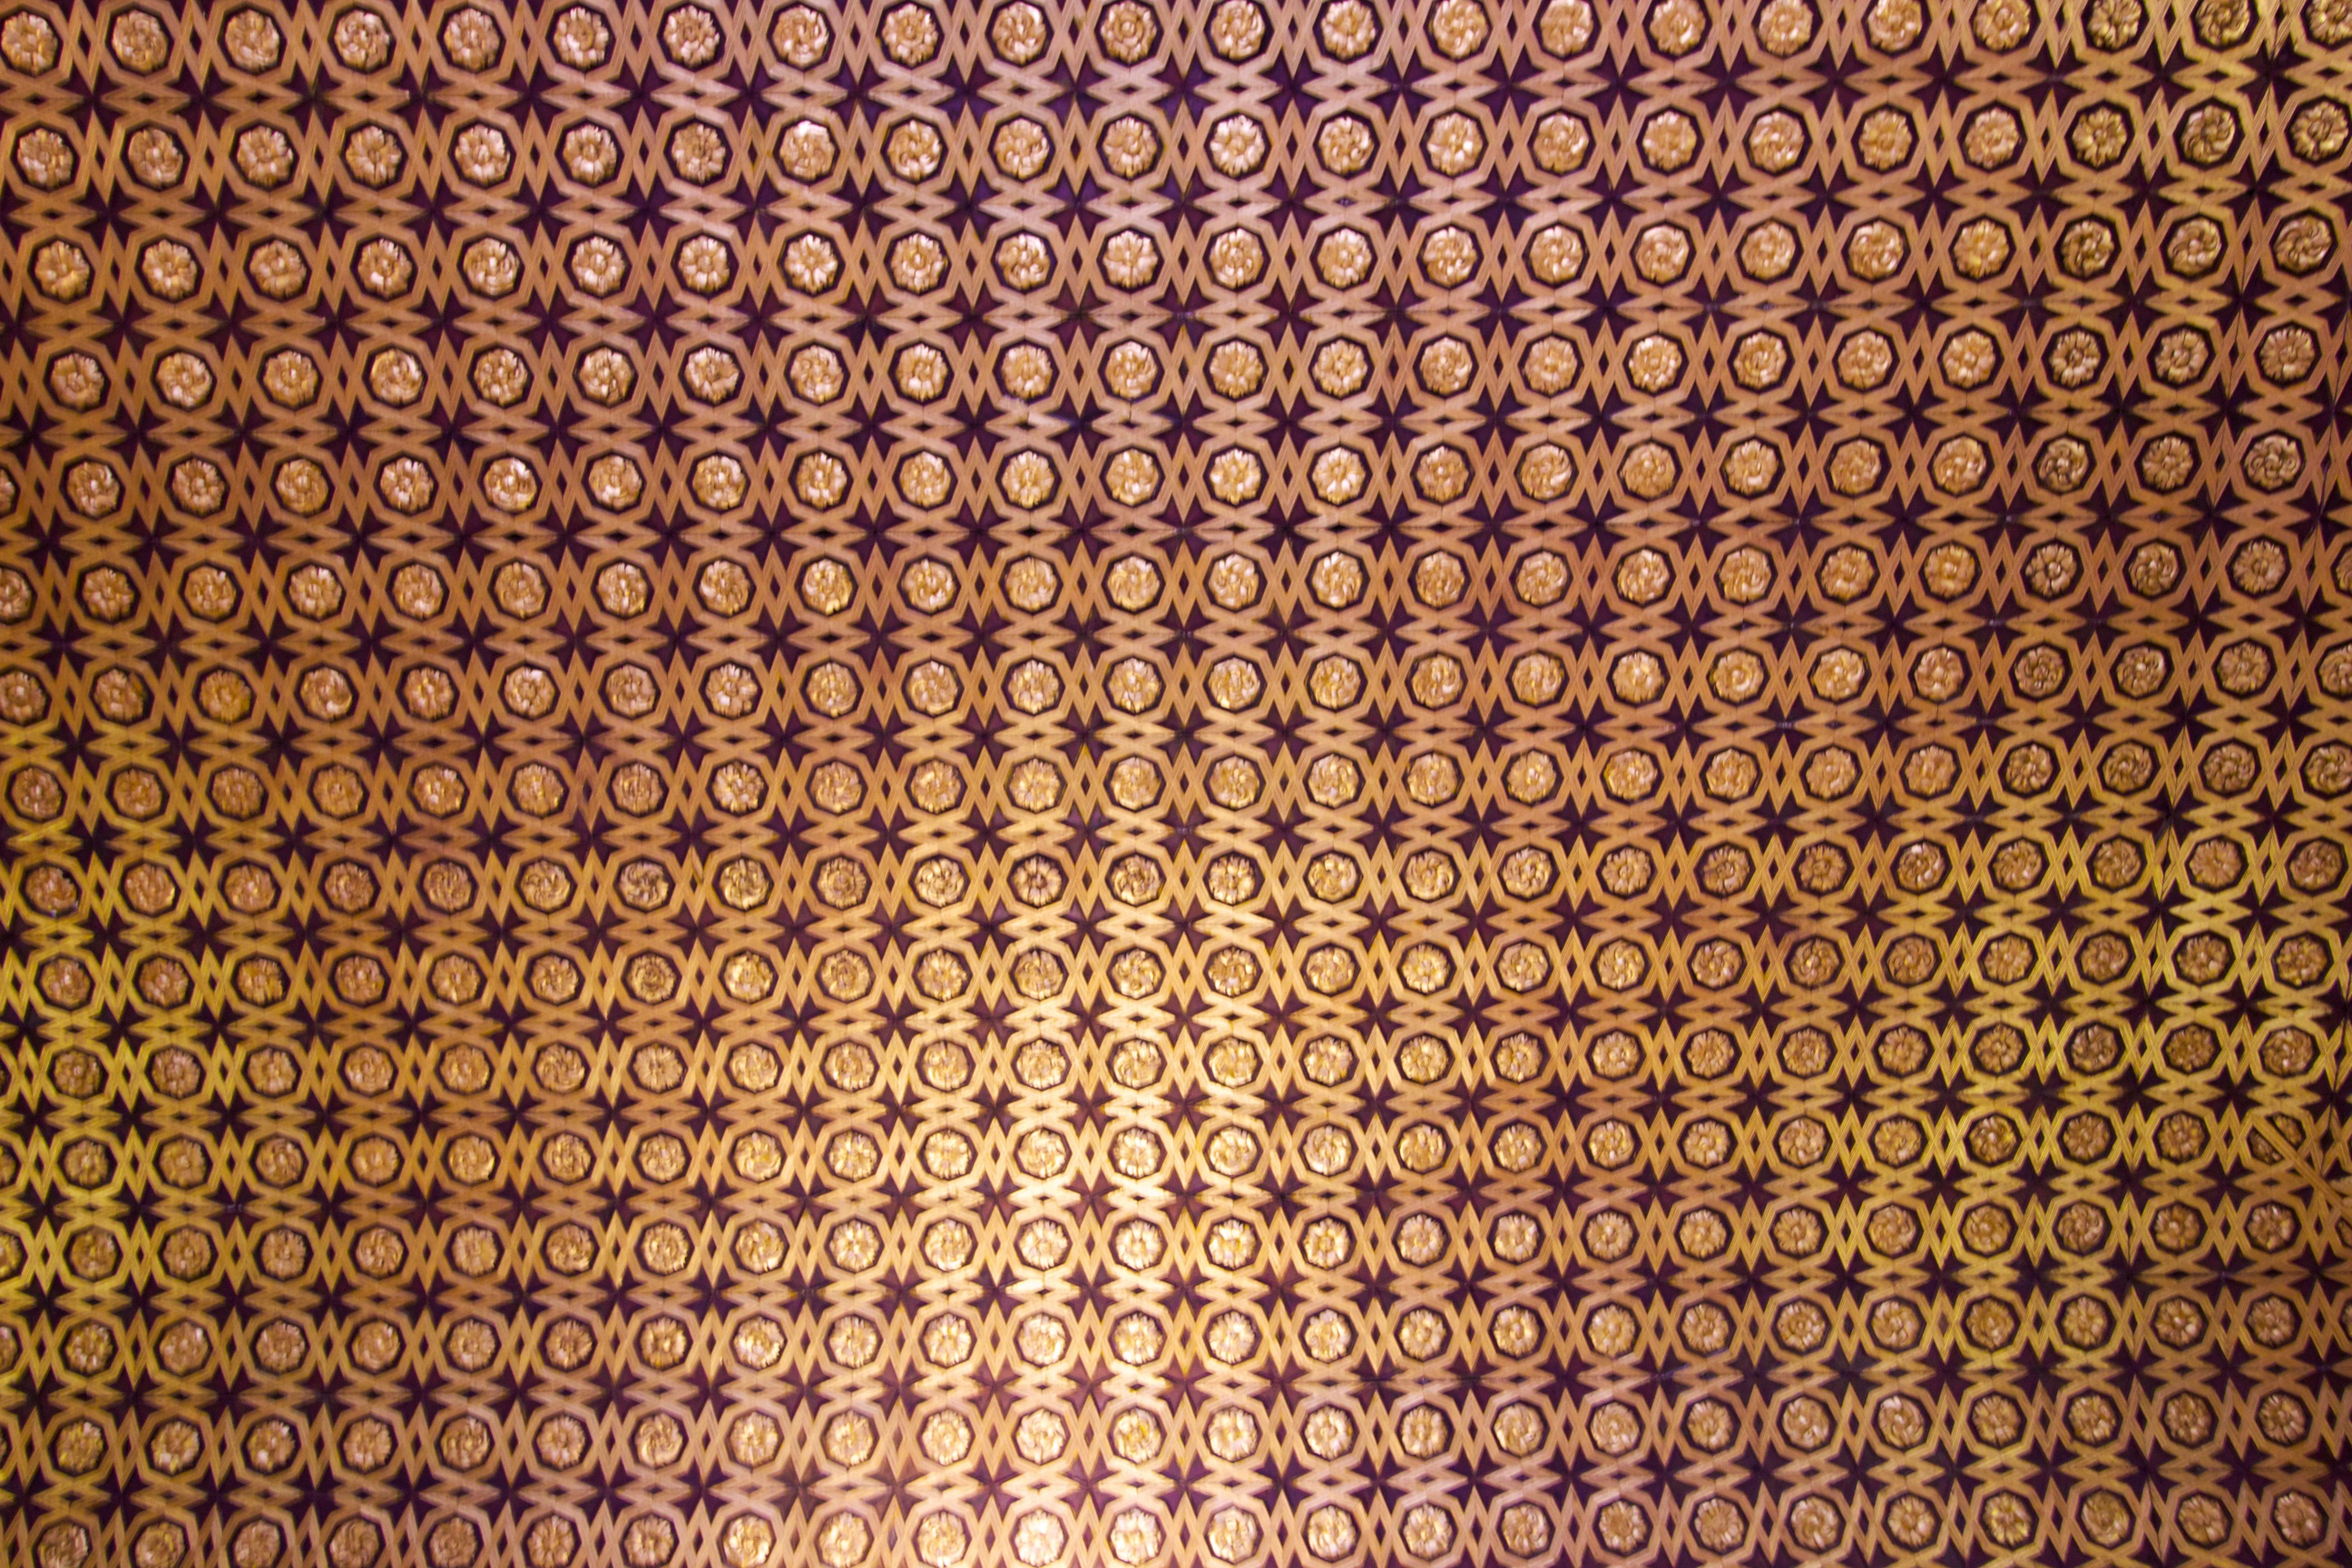 Intricate pattern on a cieling